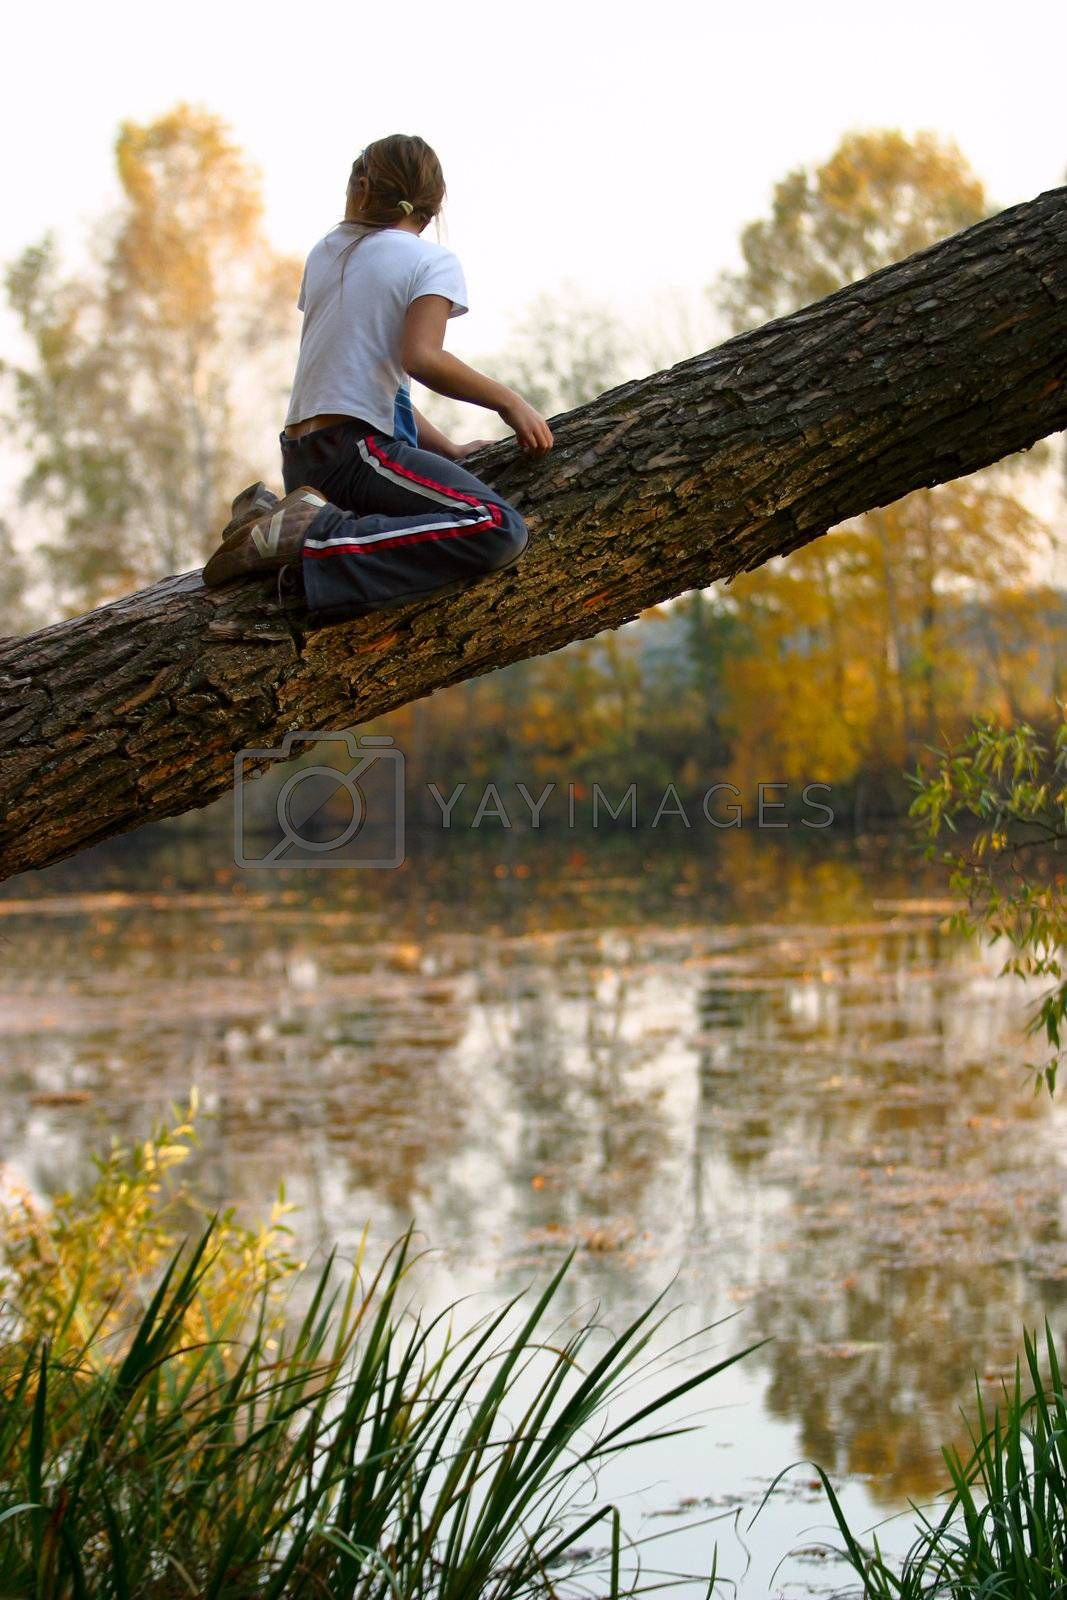 Royalty free image of The girl on a tree by friday